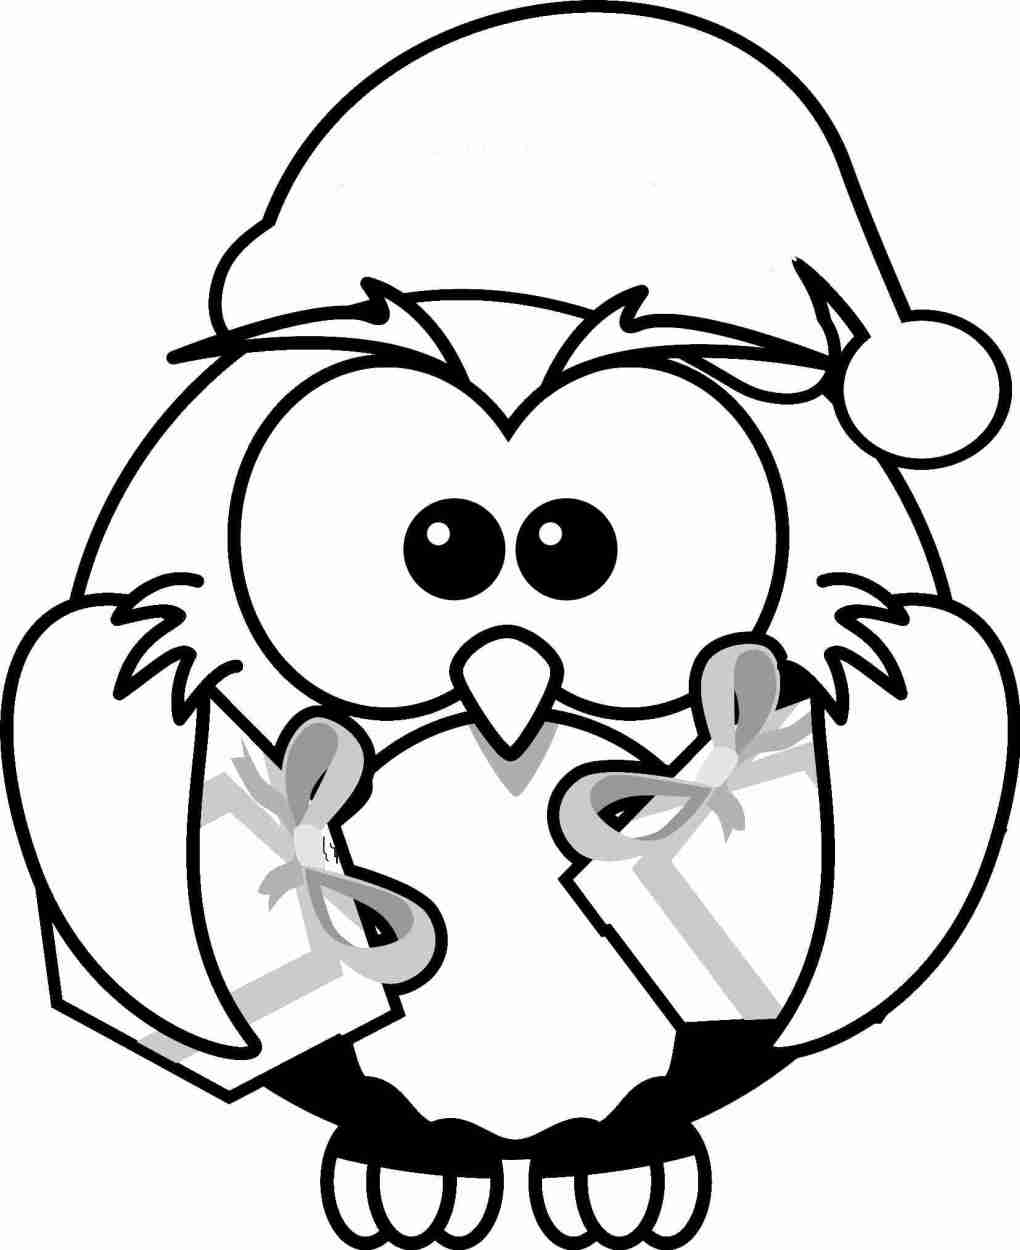 Free Christmas Coloring Pages With Top 25